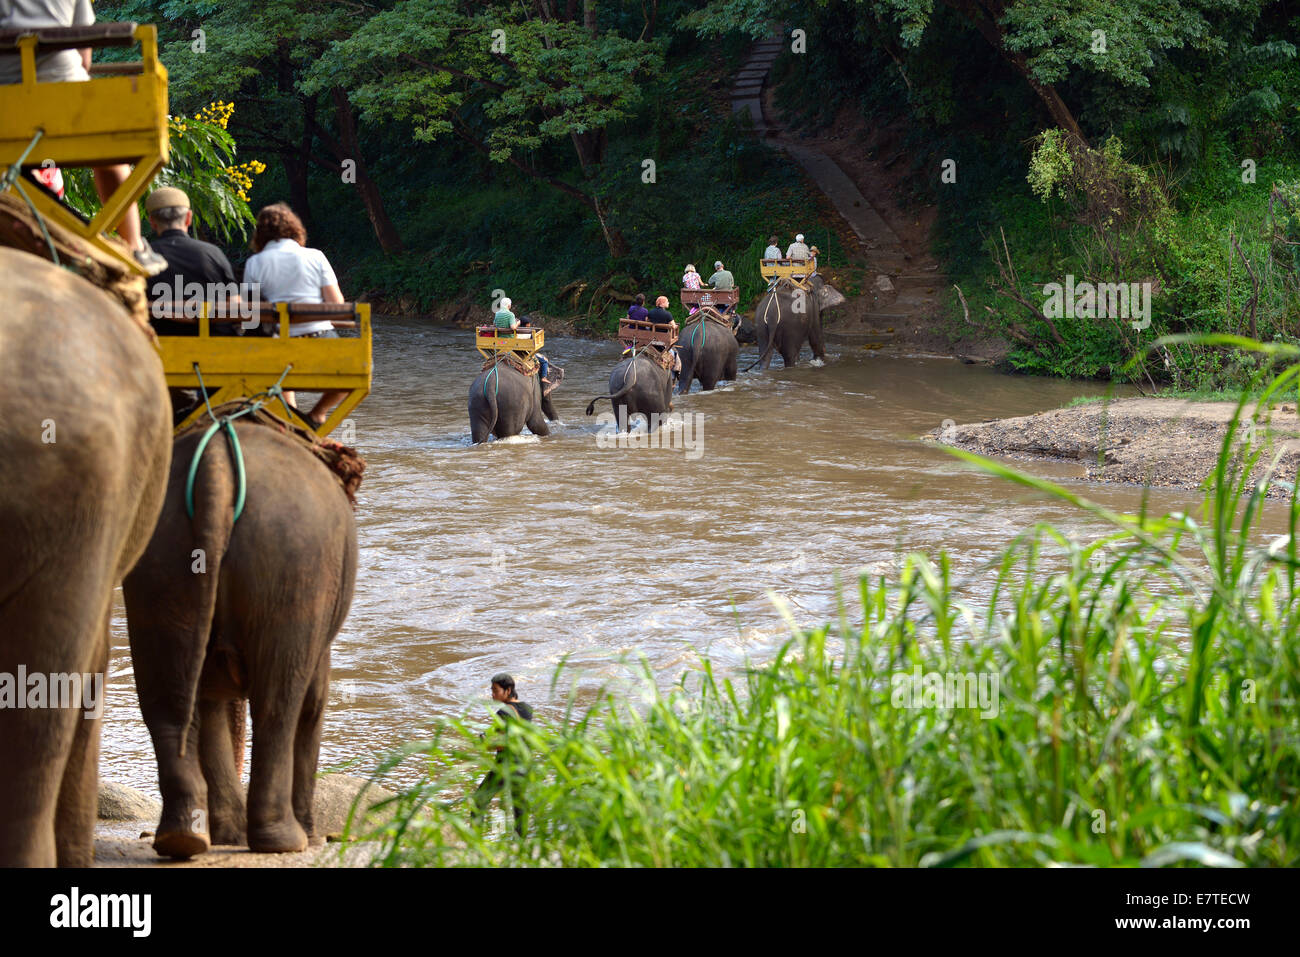 Elephant trekking with Asian or Asiatic Elephants (Elephas maximus) at Mae Tang River, Maetaman Elephant Camp - Stock Image